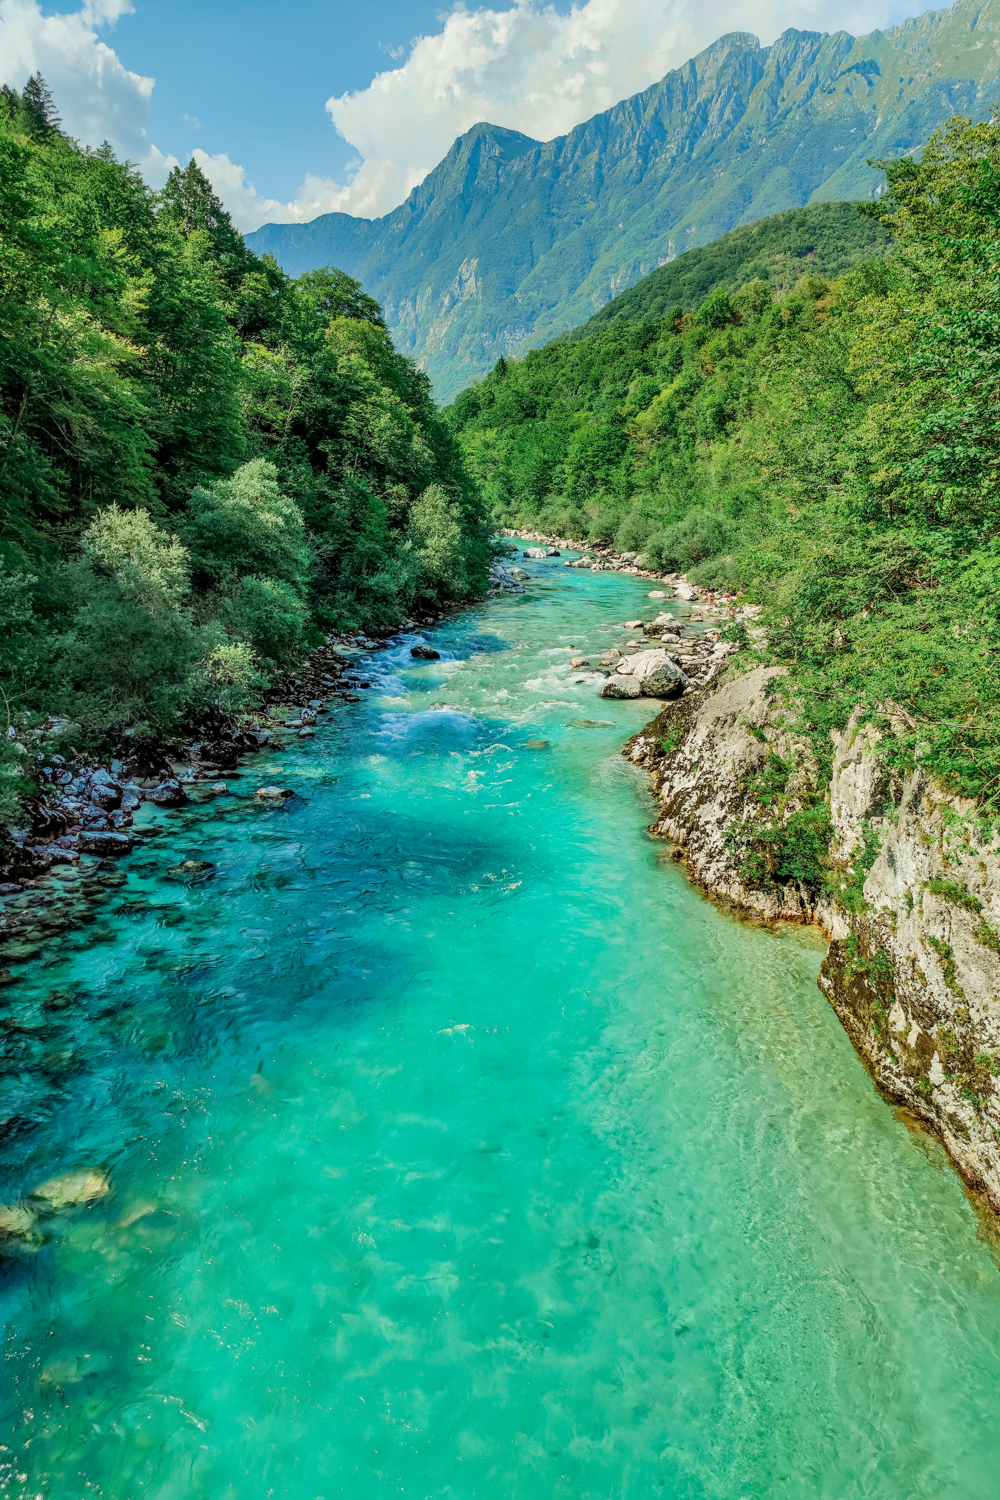 Soča river - 4-day Slovenia travel itinerary for the best outdoor adventures | Aliz's Wonderland